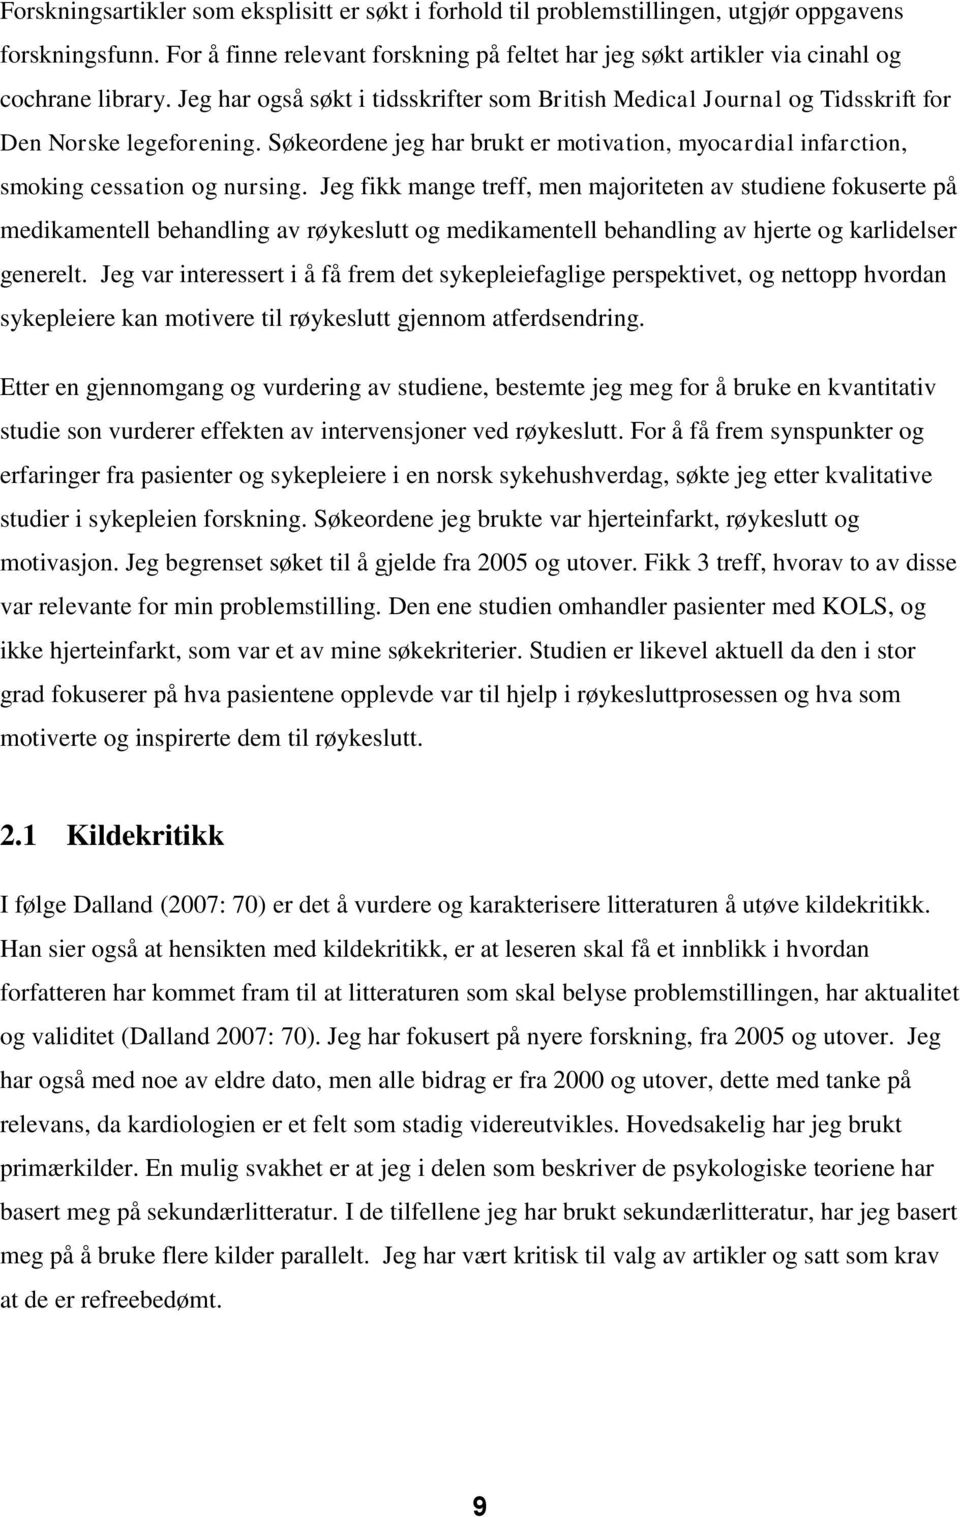 Søkeordene jeg har brukt er motivation, myocardial infarction, smoking cessation og nursing.